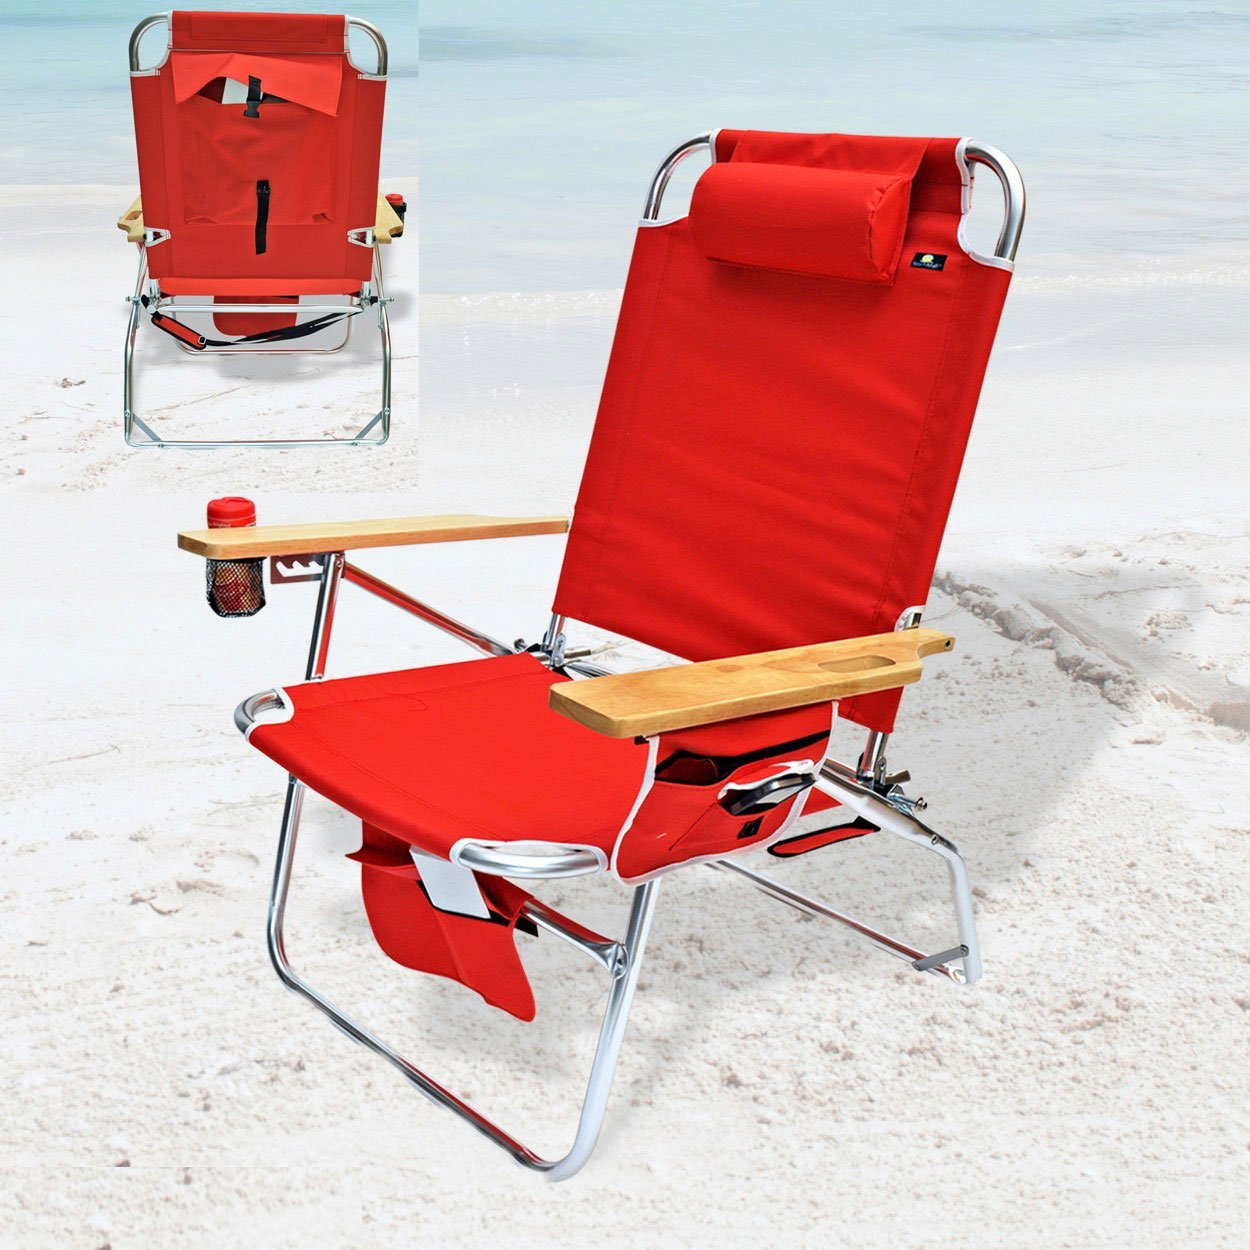 Thumbnail for Big Jumbo Heavy Duty 500 lbs XL Aluminum Beach Chair for Big and Tall Person - Best Heavy Duty Stuff